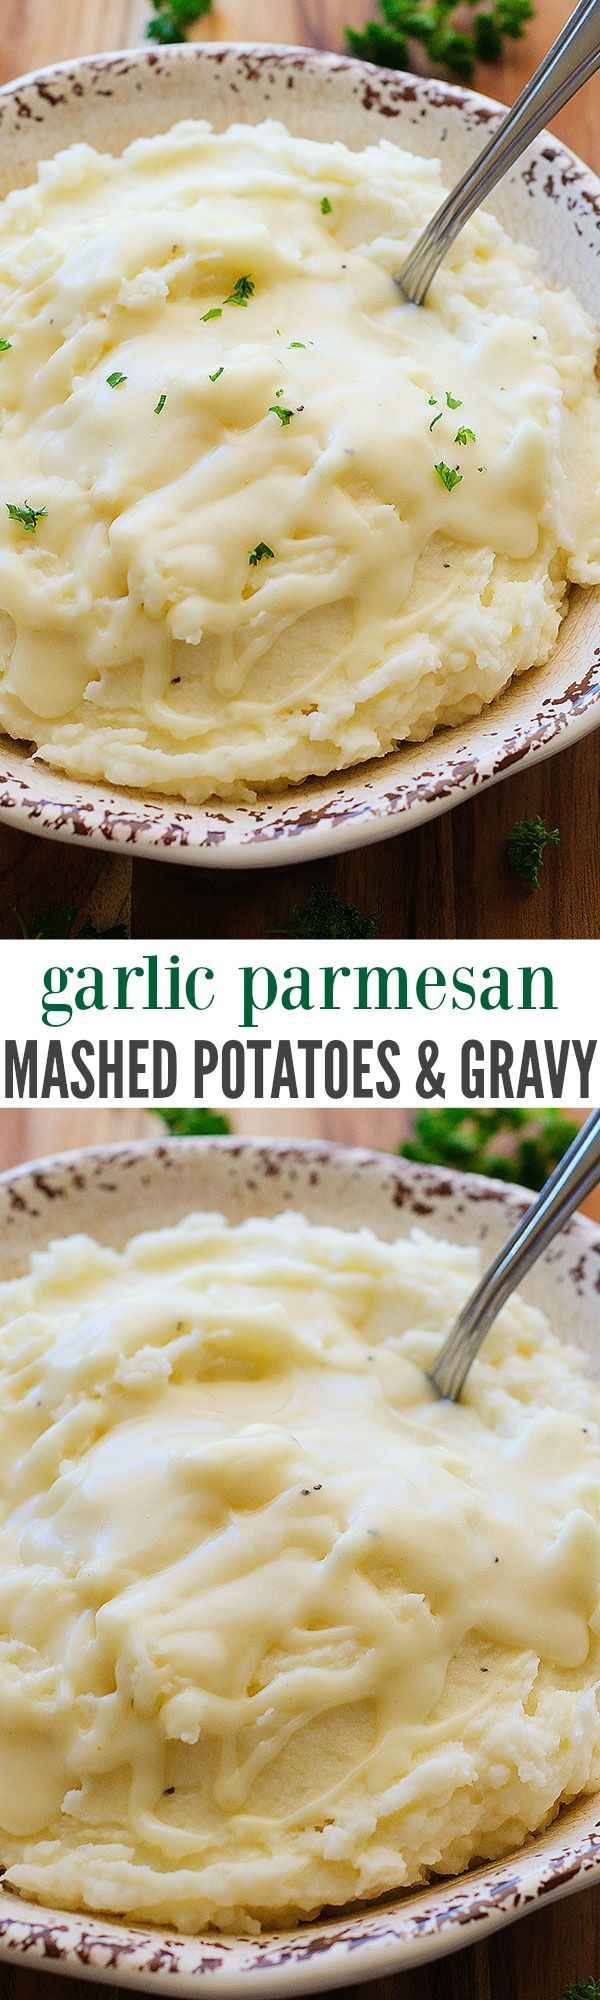 Garlic Parmesan Mashed Potatoes & Gravy _are packed with flavor & a new-found favorite in our home. I was so happy with the end result. The garlic powder used makes them extra easy to make & creates the perfect garlic flavor. The potatoes were perfectly creamy & the gravy was so delicious!